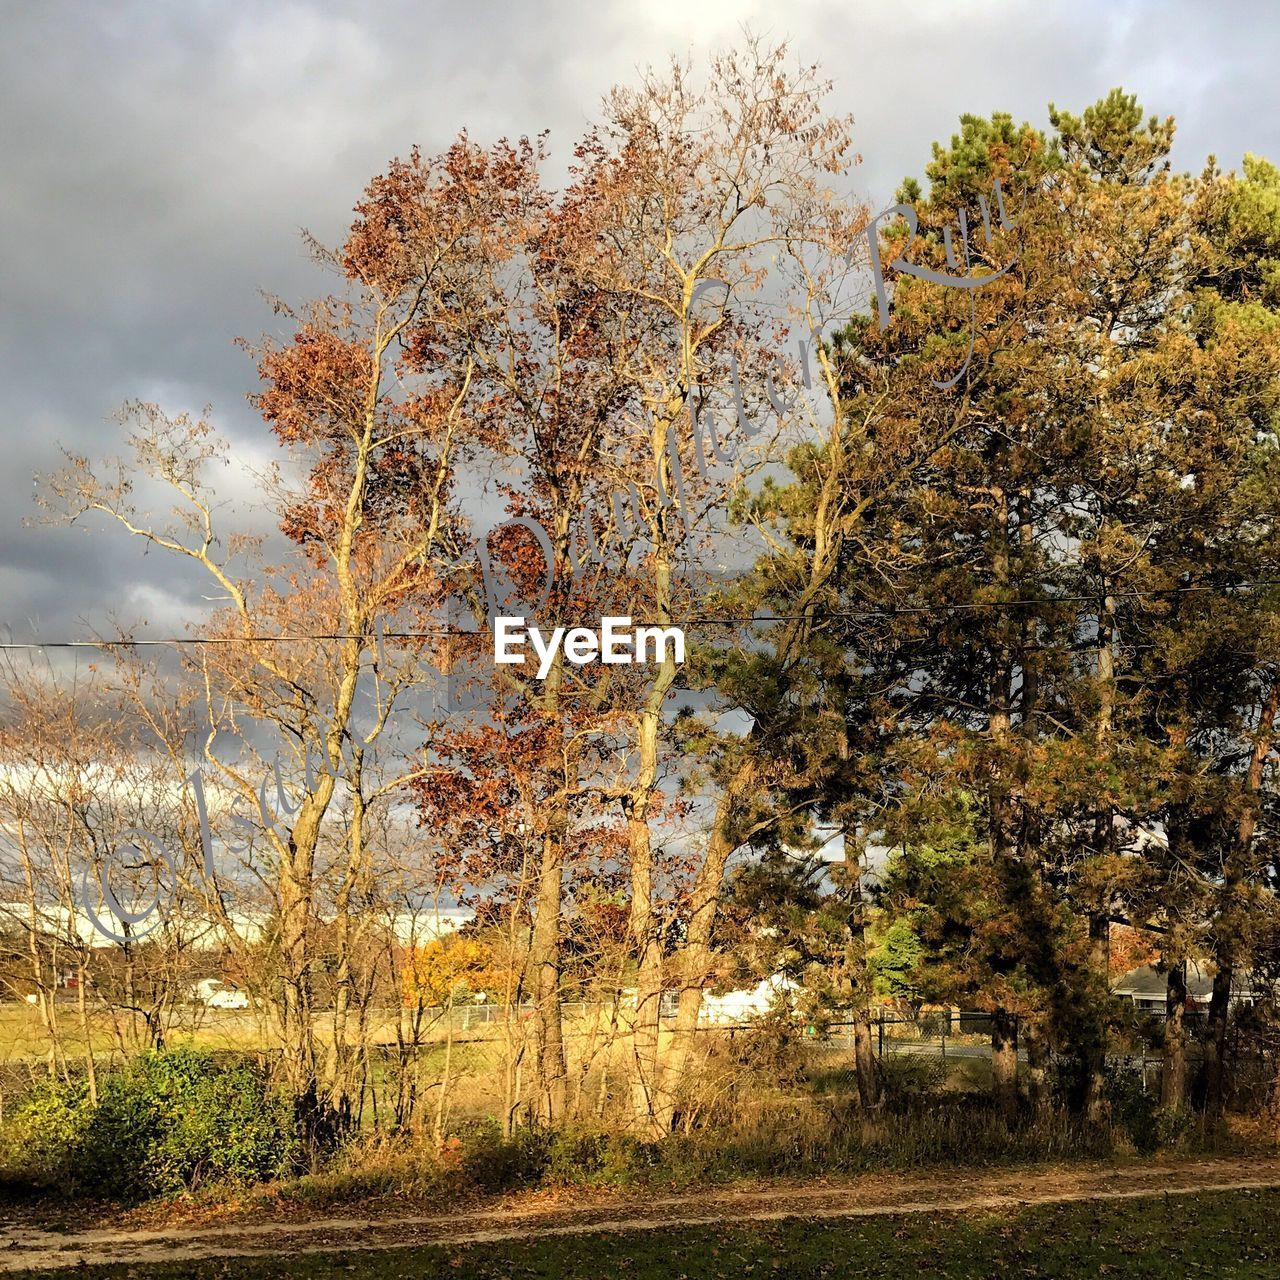 tree, autumn, nature, tranquility, beauty in nature, tranquil scene, no people, growth, scenics, change, day, outdoors, sky, cloud - sky, landscape, leaf, branch